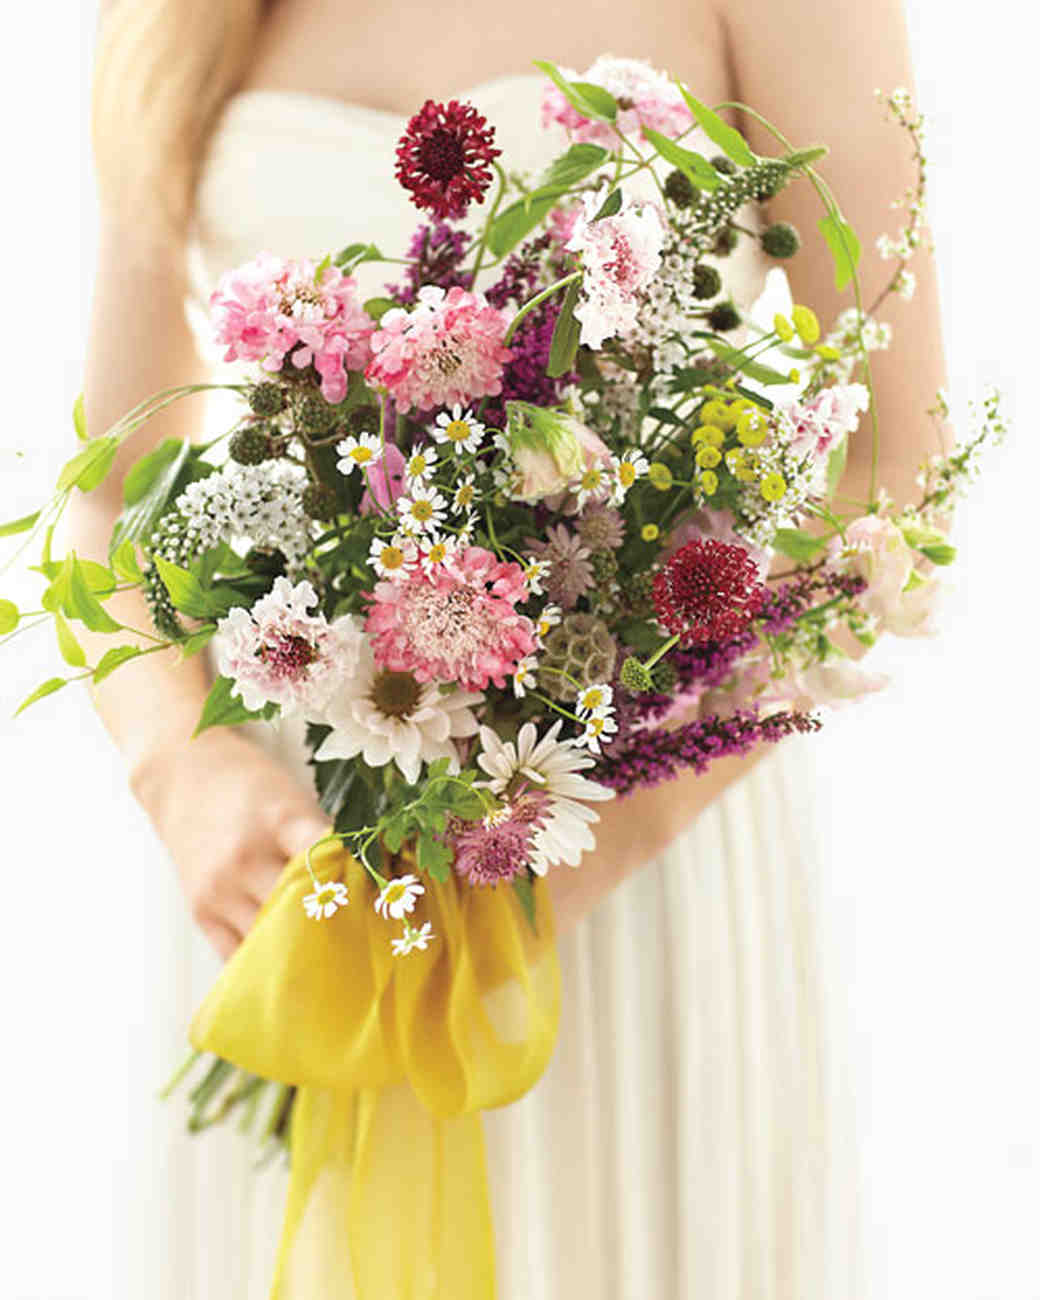 Wedding Flowers Bouquet Ideas: Elegant And Inexpensive Wedding Flower Ideas